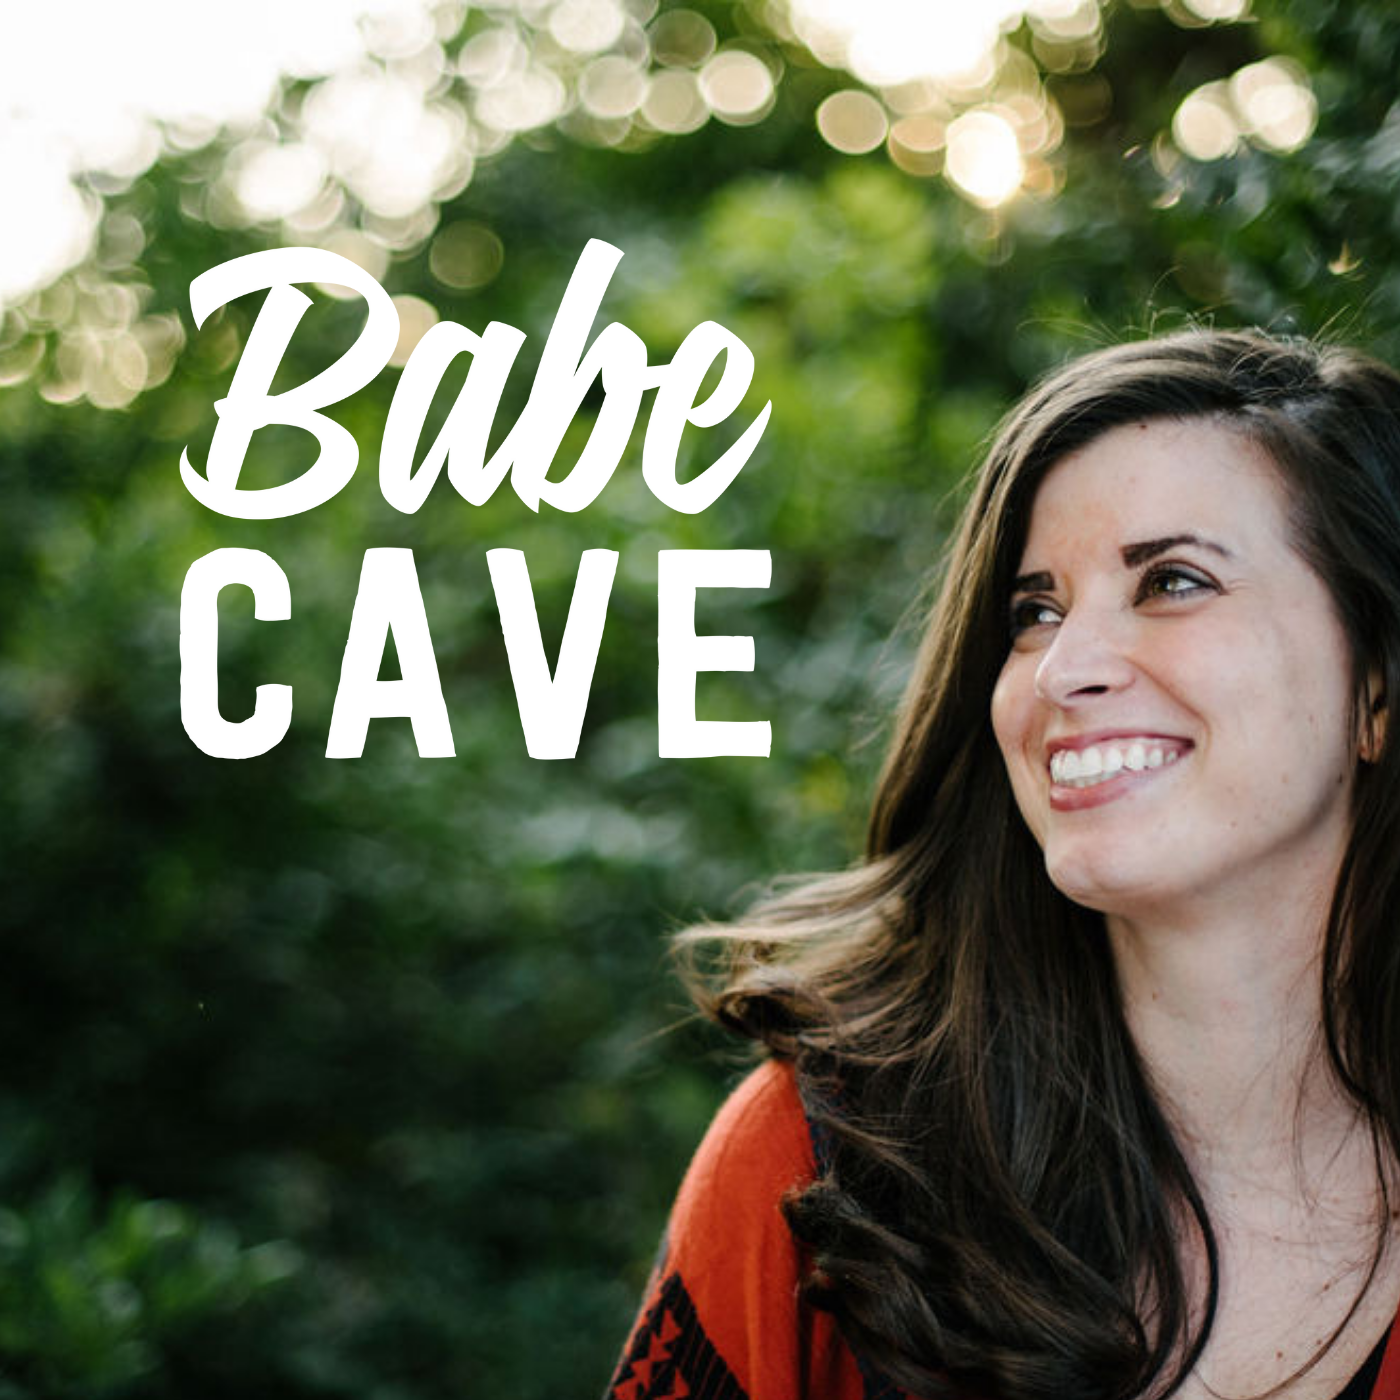 "Join the cave - Become part of the Babe Cave podcast community which has been called:""A breath of fresh air when it comes to podcasts for women and podcasts for a sense of community."""